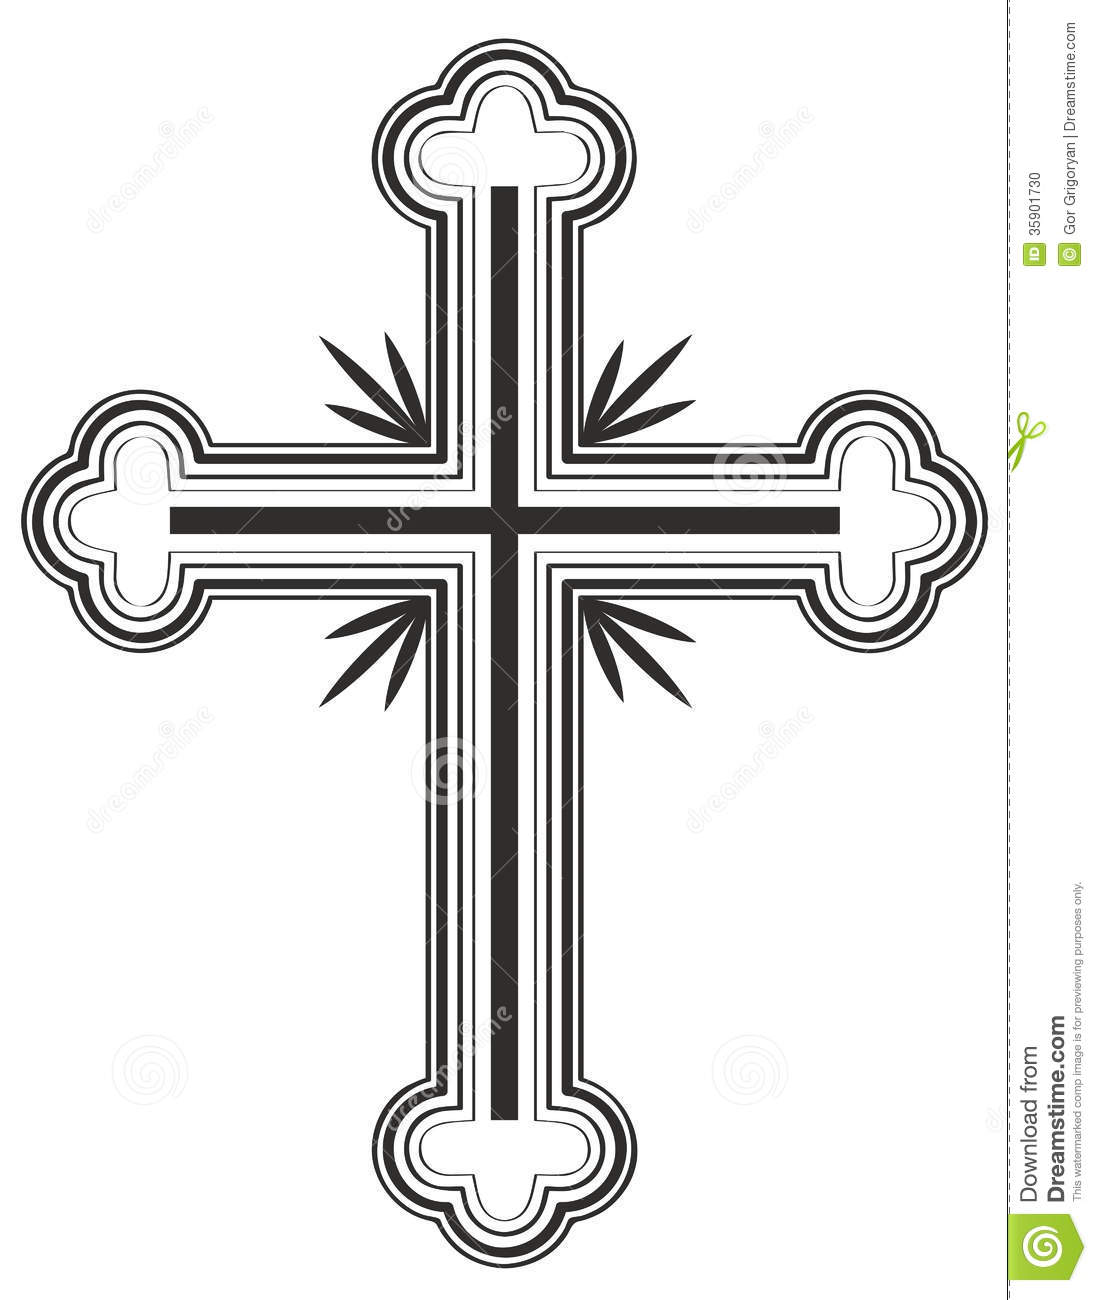 funeral cross clipart clipart suggest clip art of crossing r clip art of crosses with hearts